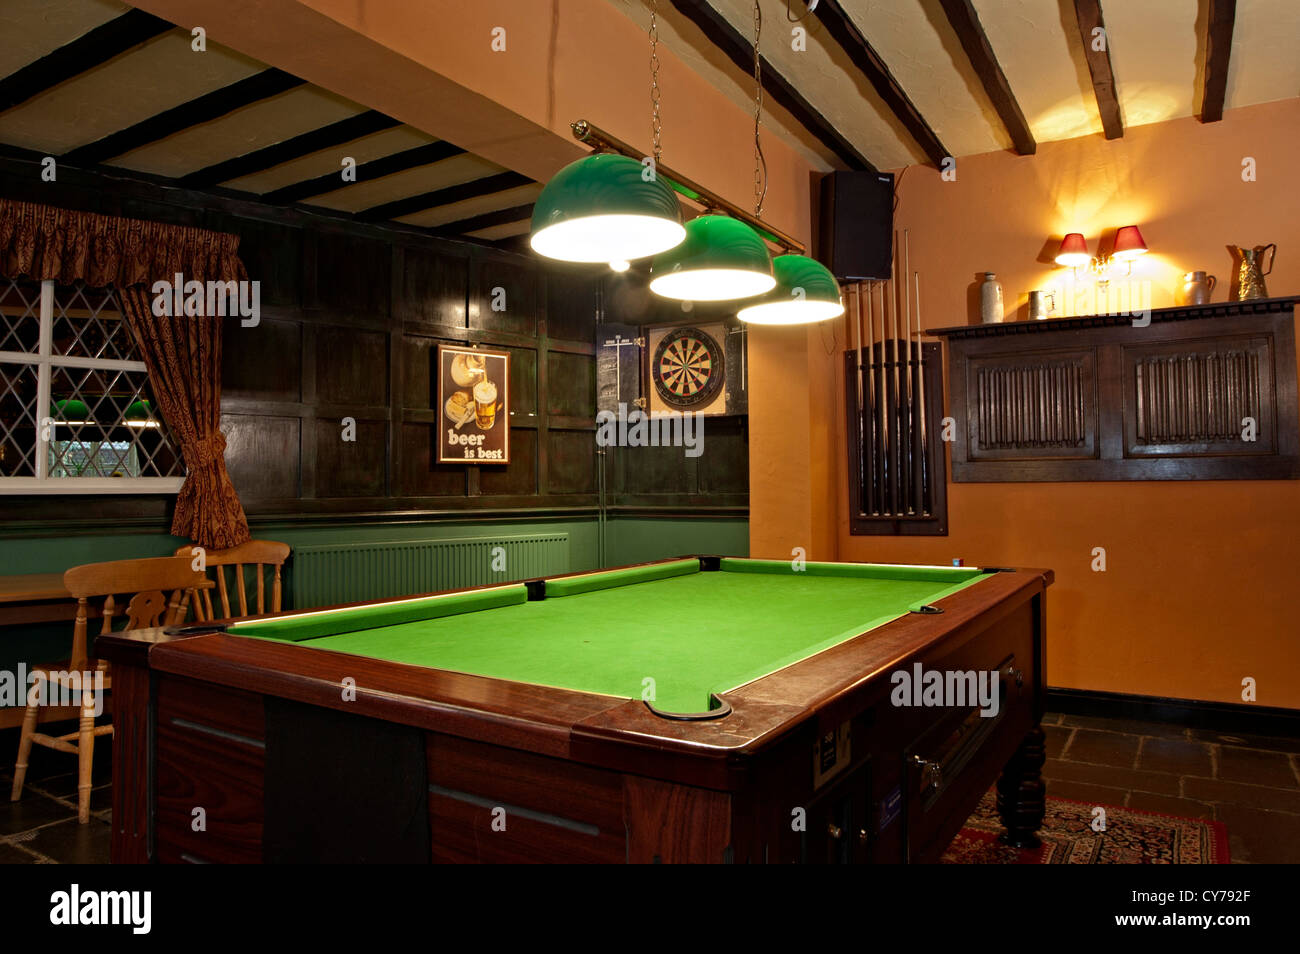 The Sarah Mansfield Pub Game Room With Pool Table And Darts Stock - How much space do you need for a pool table